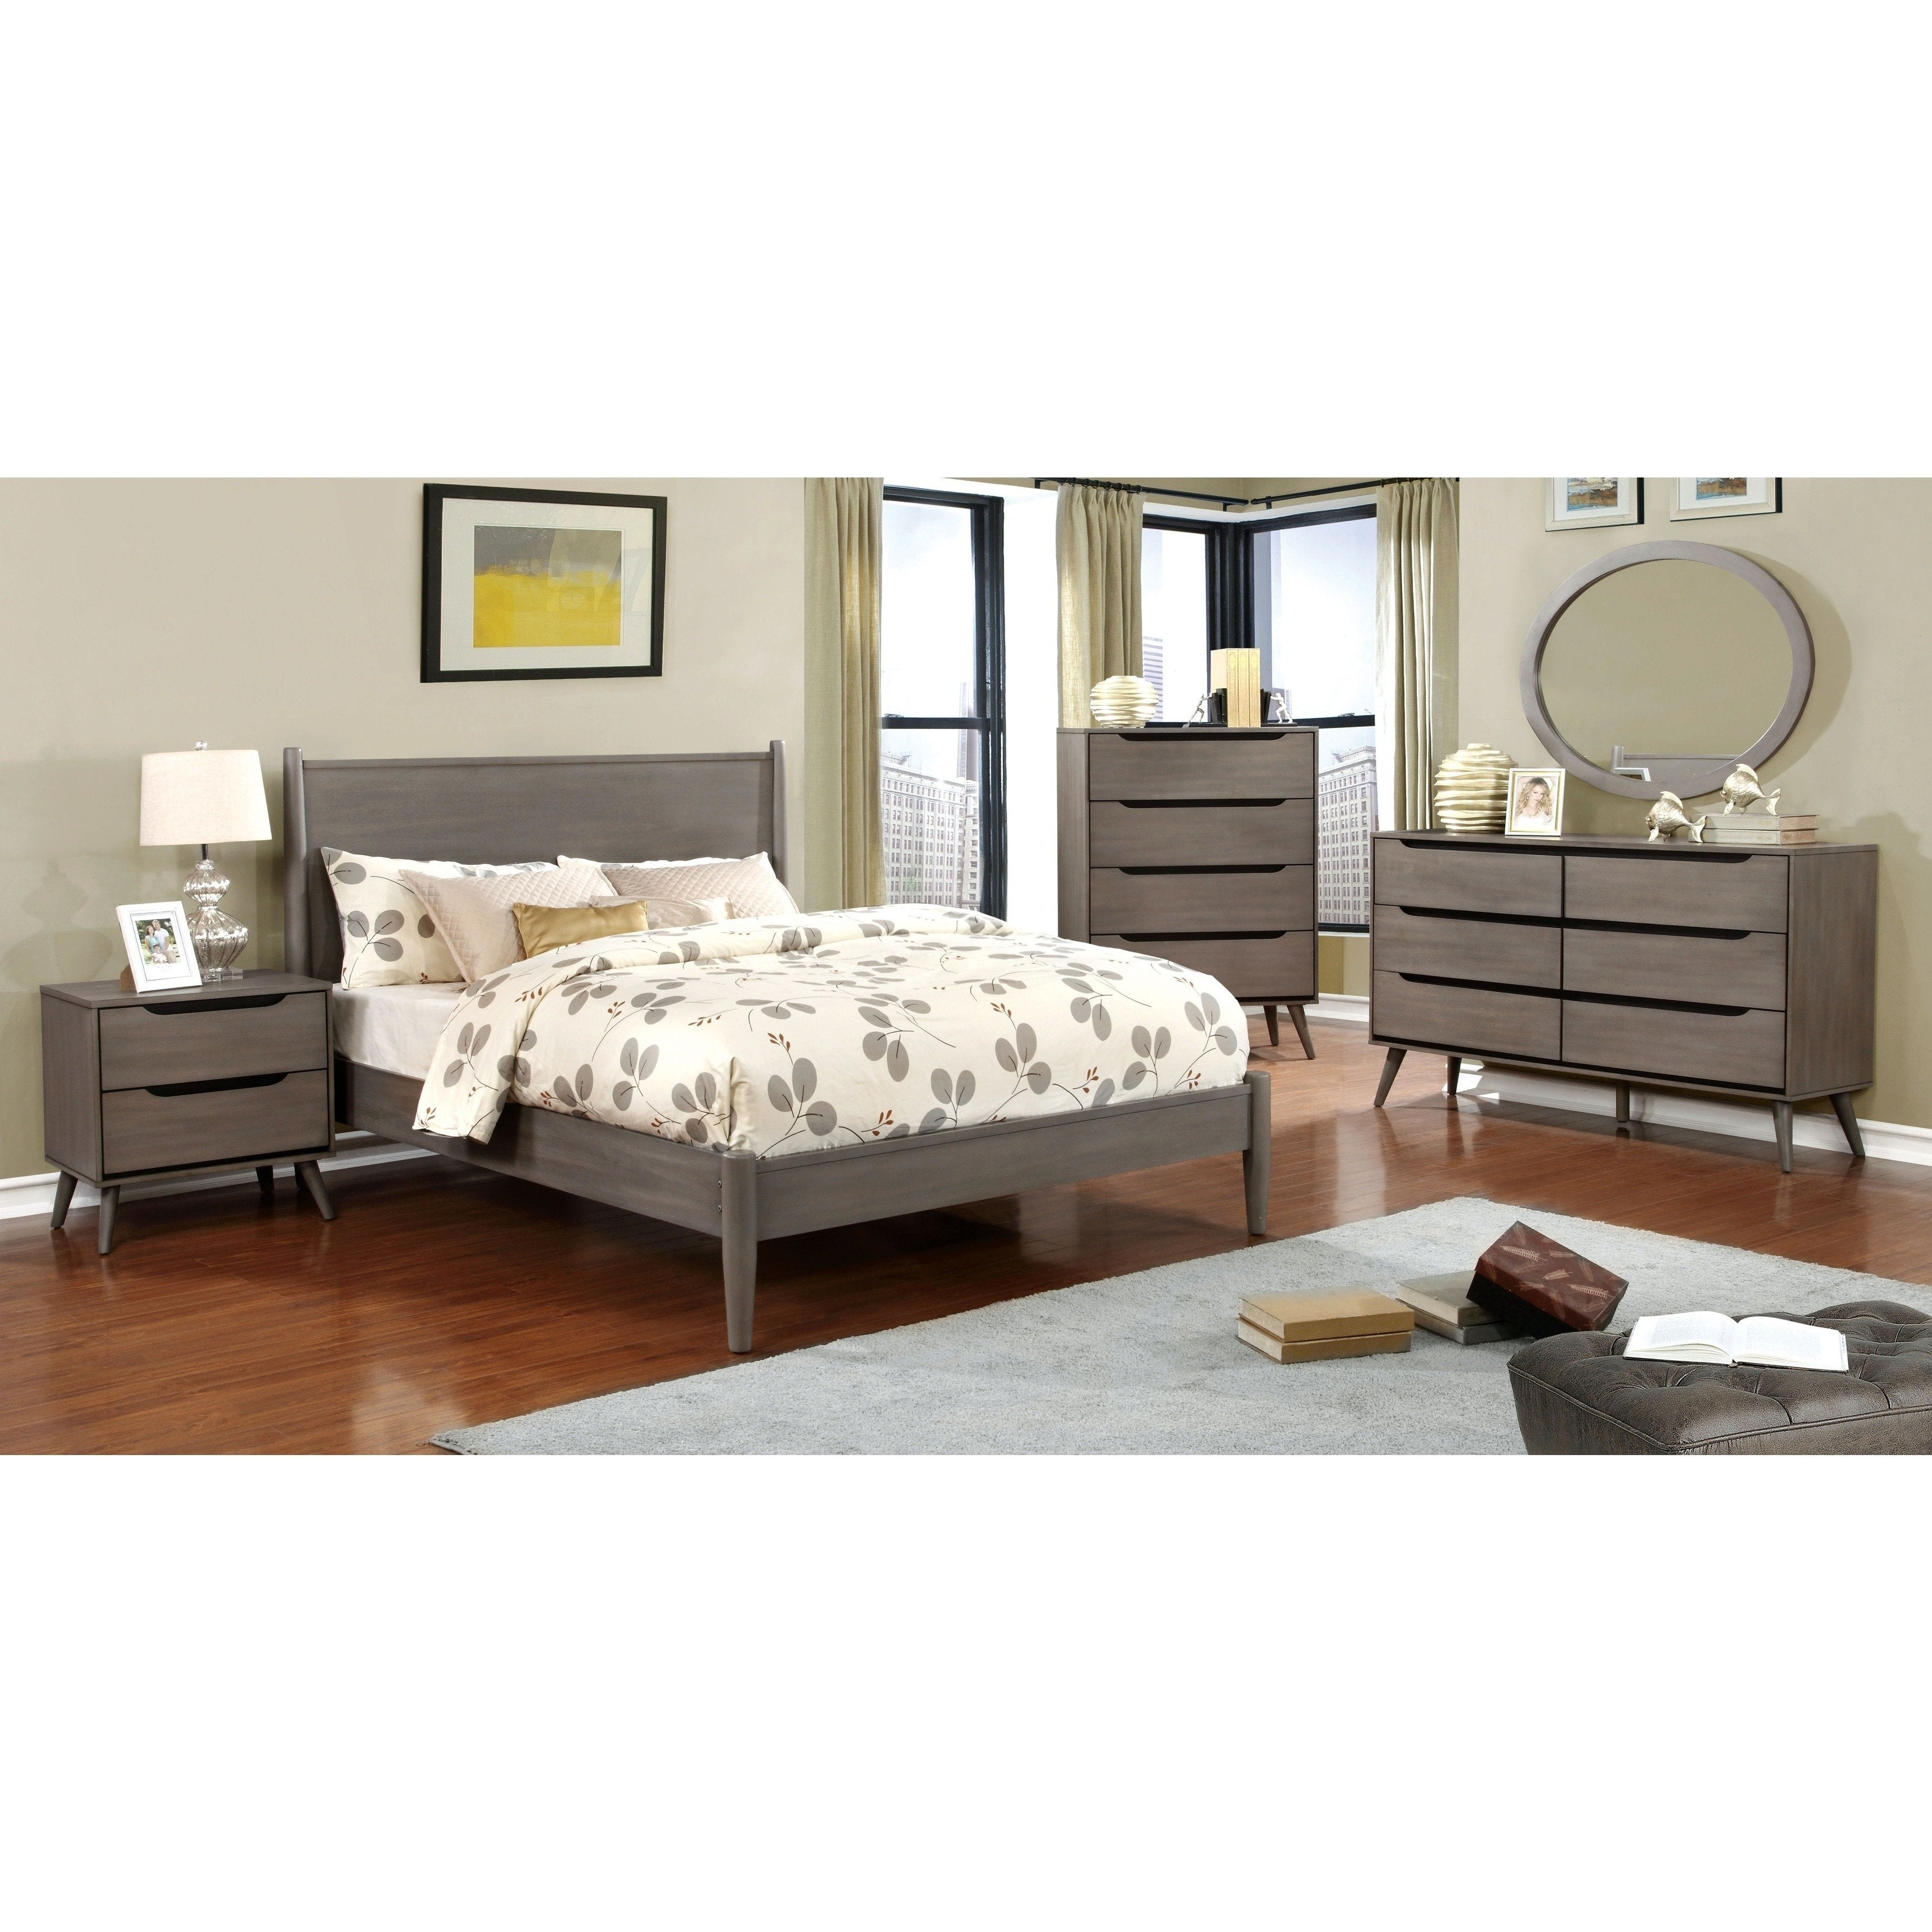 Corrine Ii Mid Century Modern Grey 4 Piece Bedroom Set pertaining to 15 Some of the Coolest Ideas How to Makeover Mid Century Modern Bedroom Set